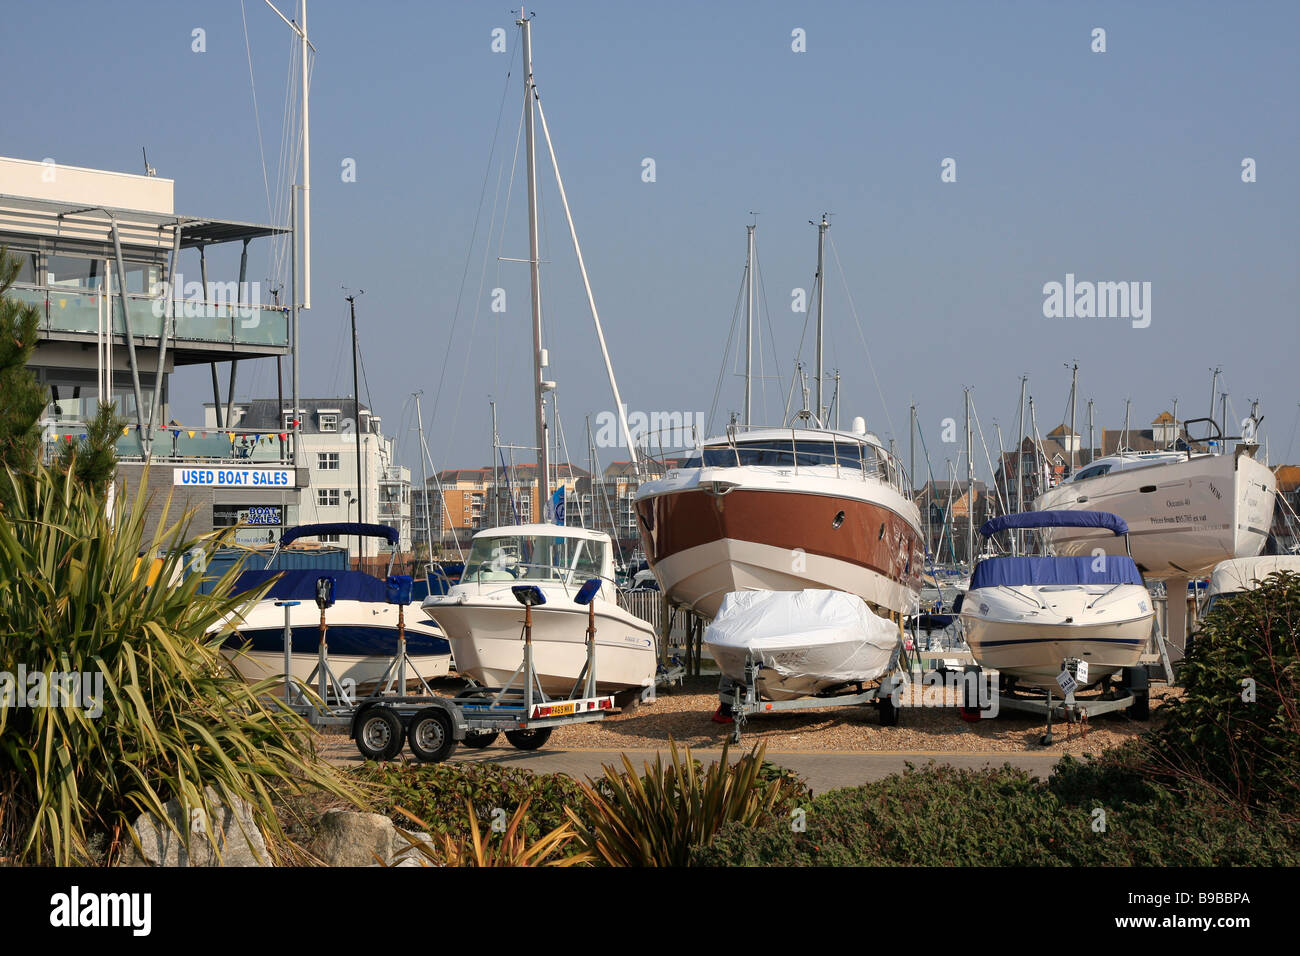 Yachts and cabin cruisers for sale. - Stock Image